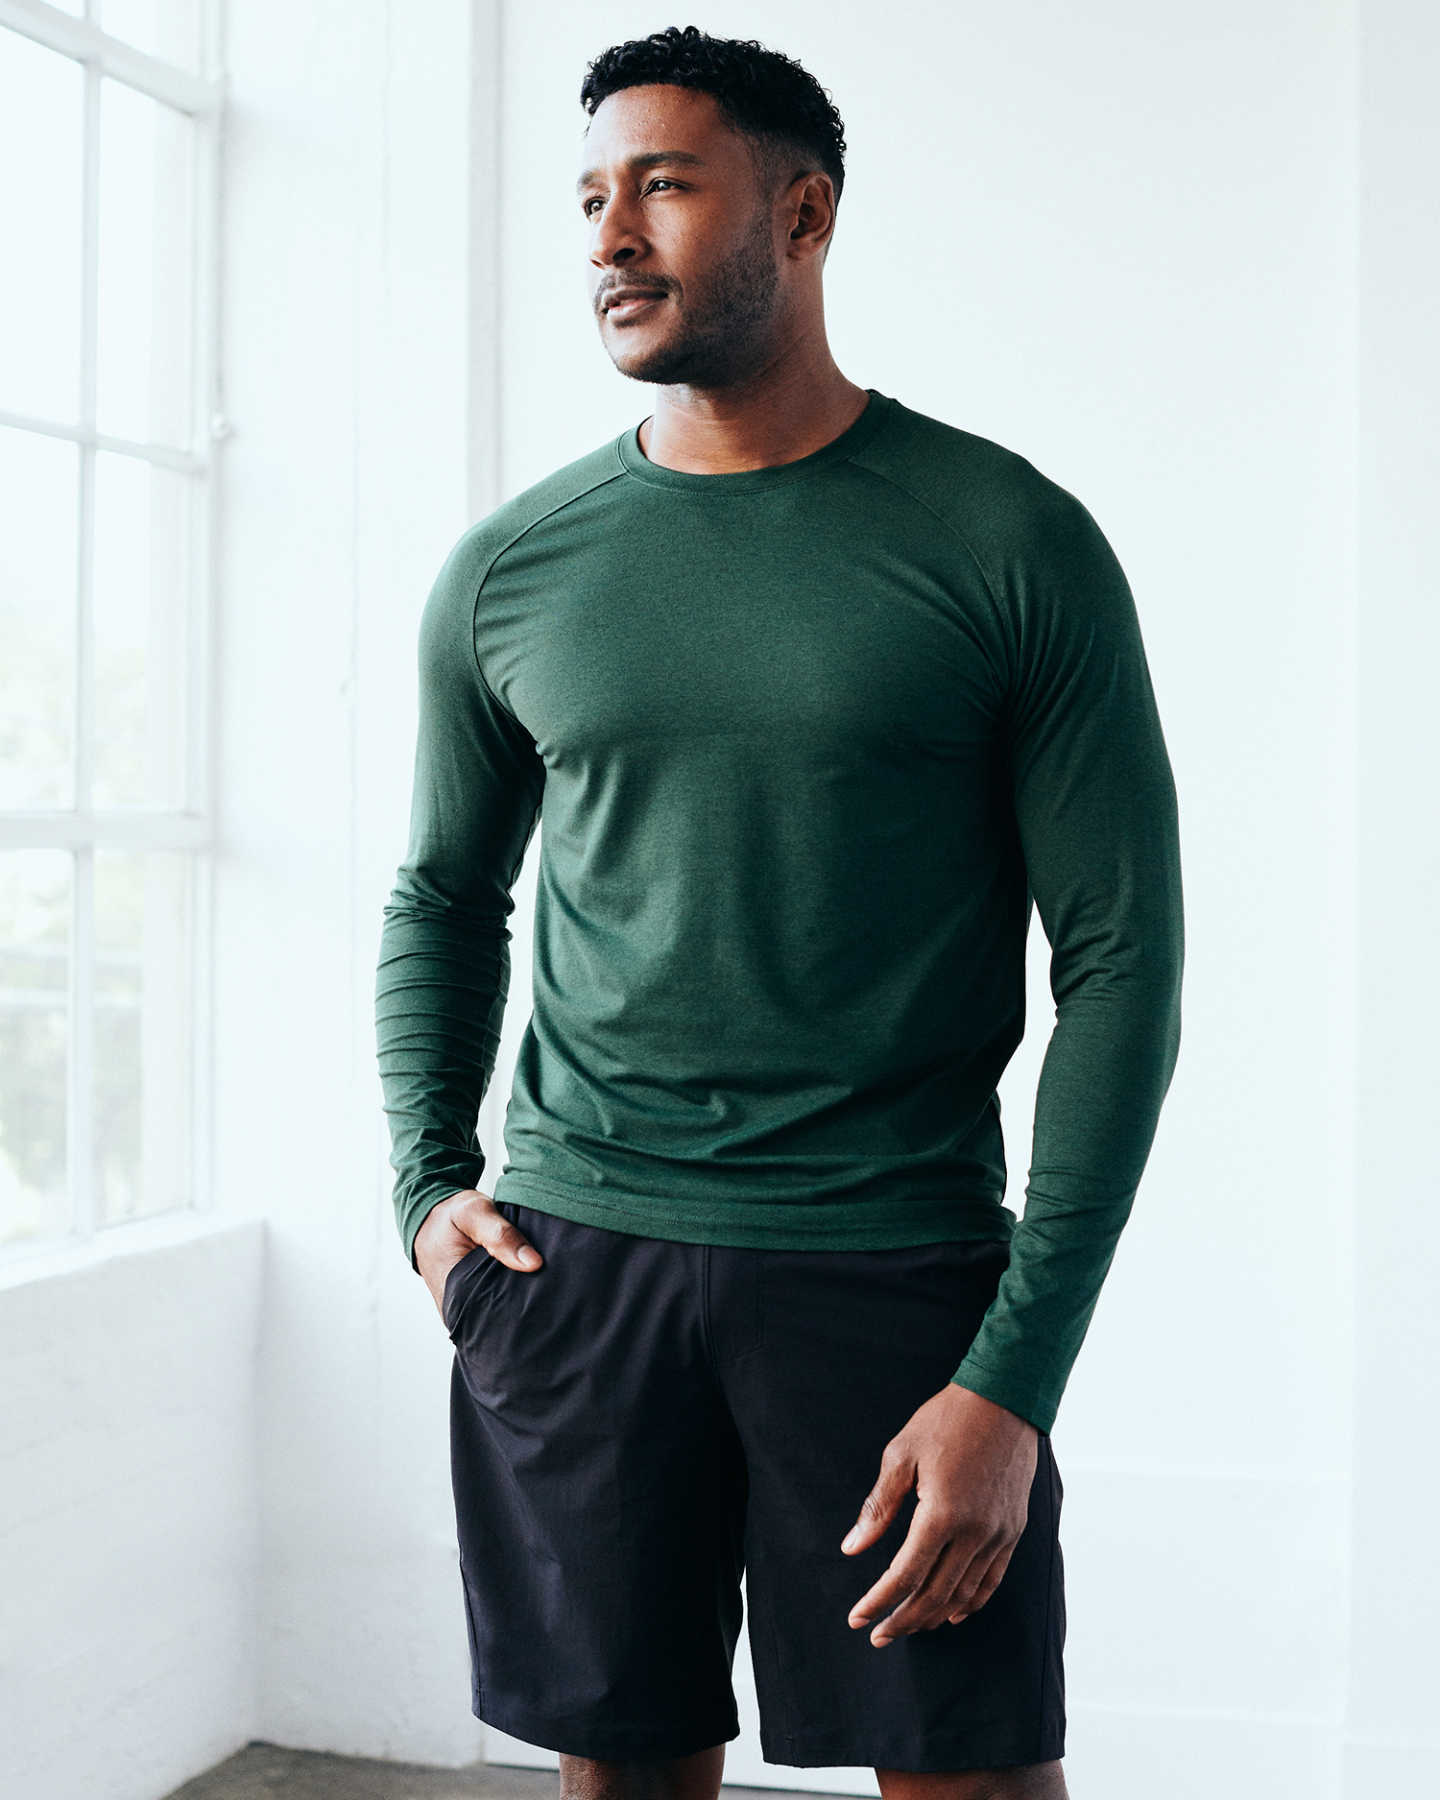 Flowknit Ultra-Soft Performance Long Sleeve Tee - Olive - 10